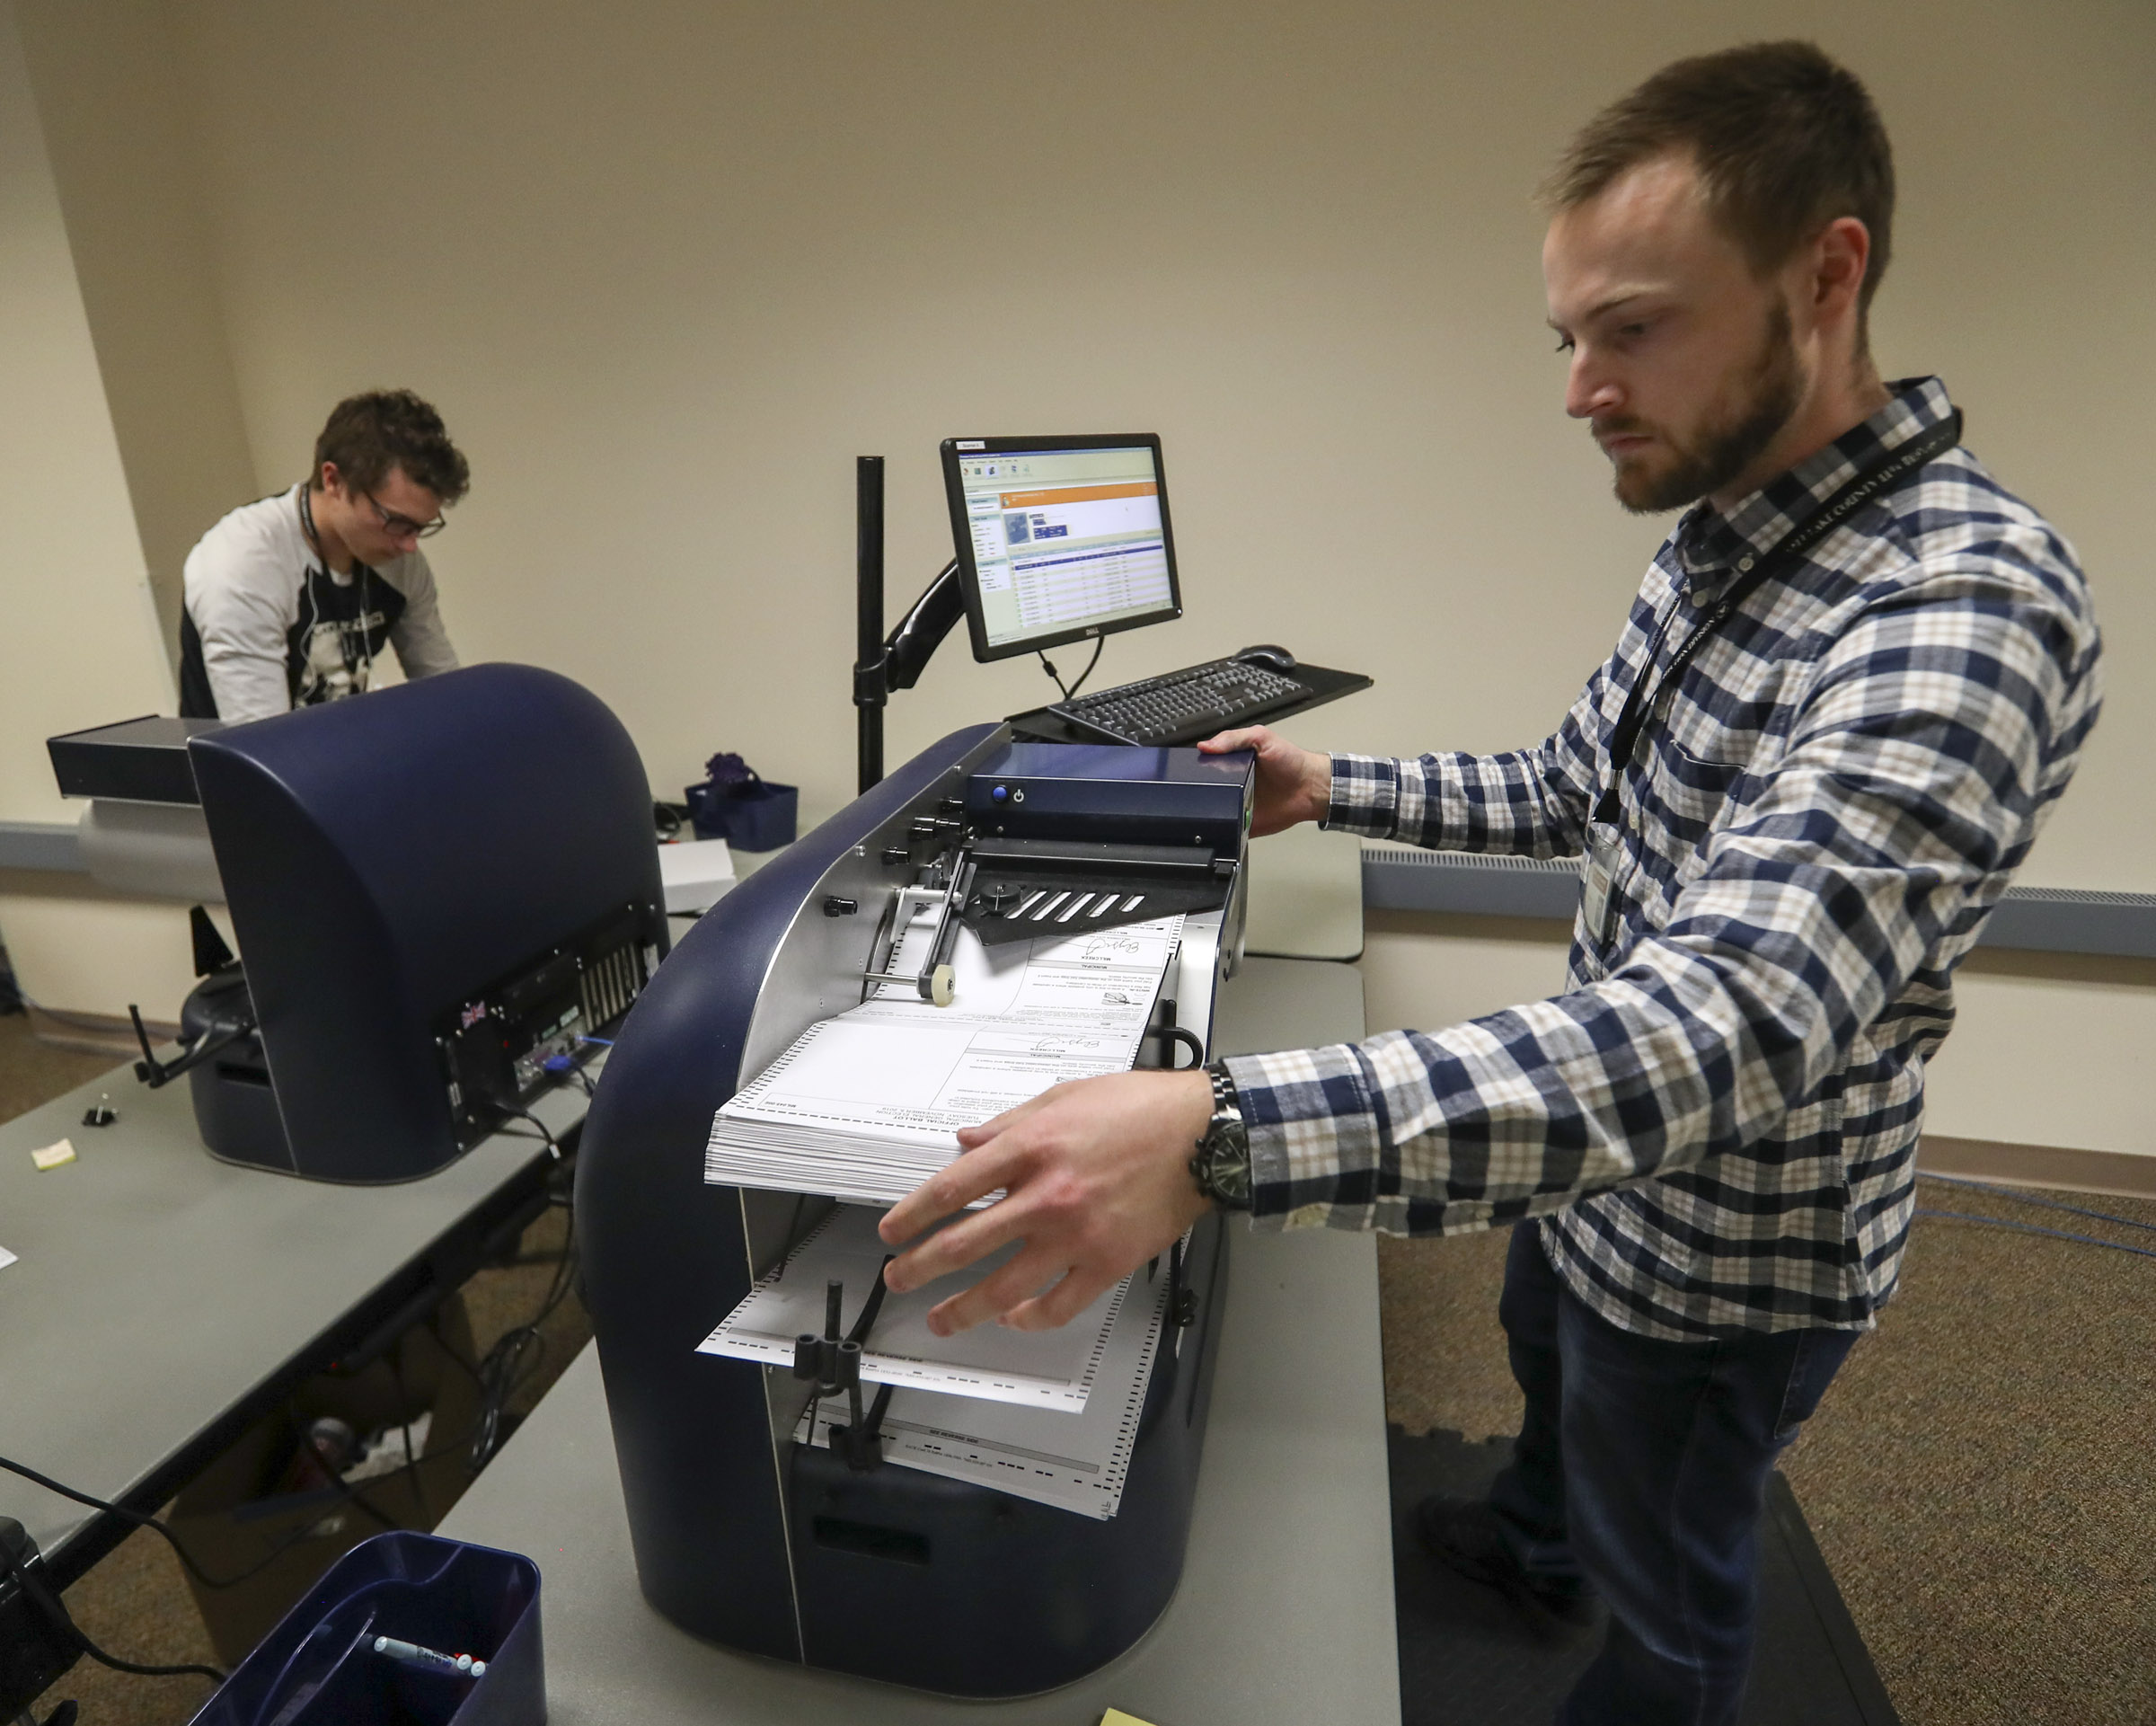 Salt Lake County data analyst Stephen Moore, right, and Spencer Dillon, a temporary employee, tabulate ballots at the Salt Lake County Government Center in Salt Lake City on Monday, Nov. 4, 2019.